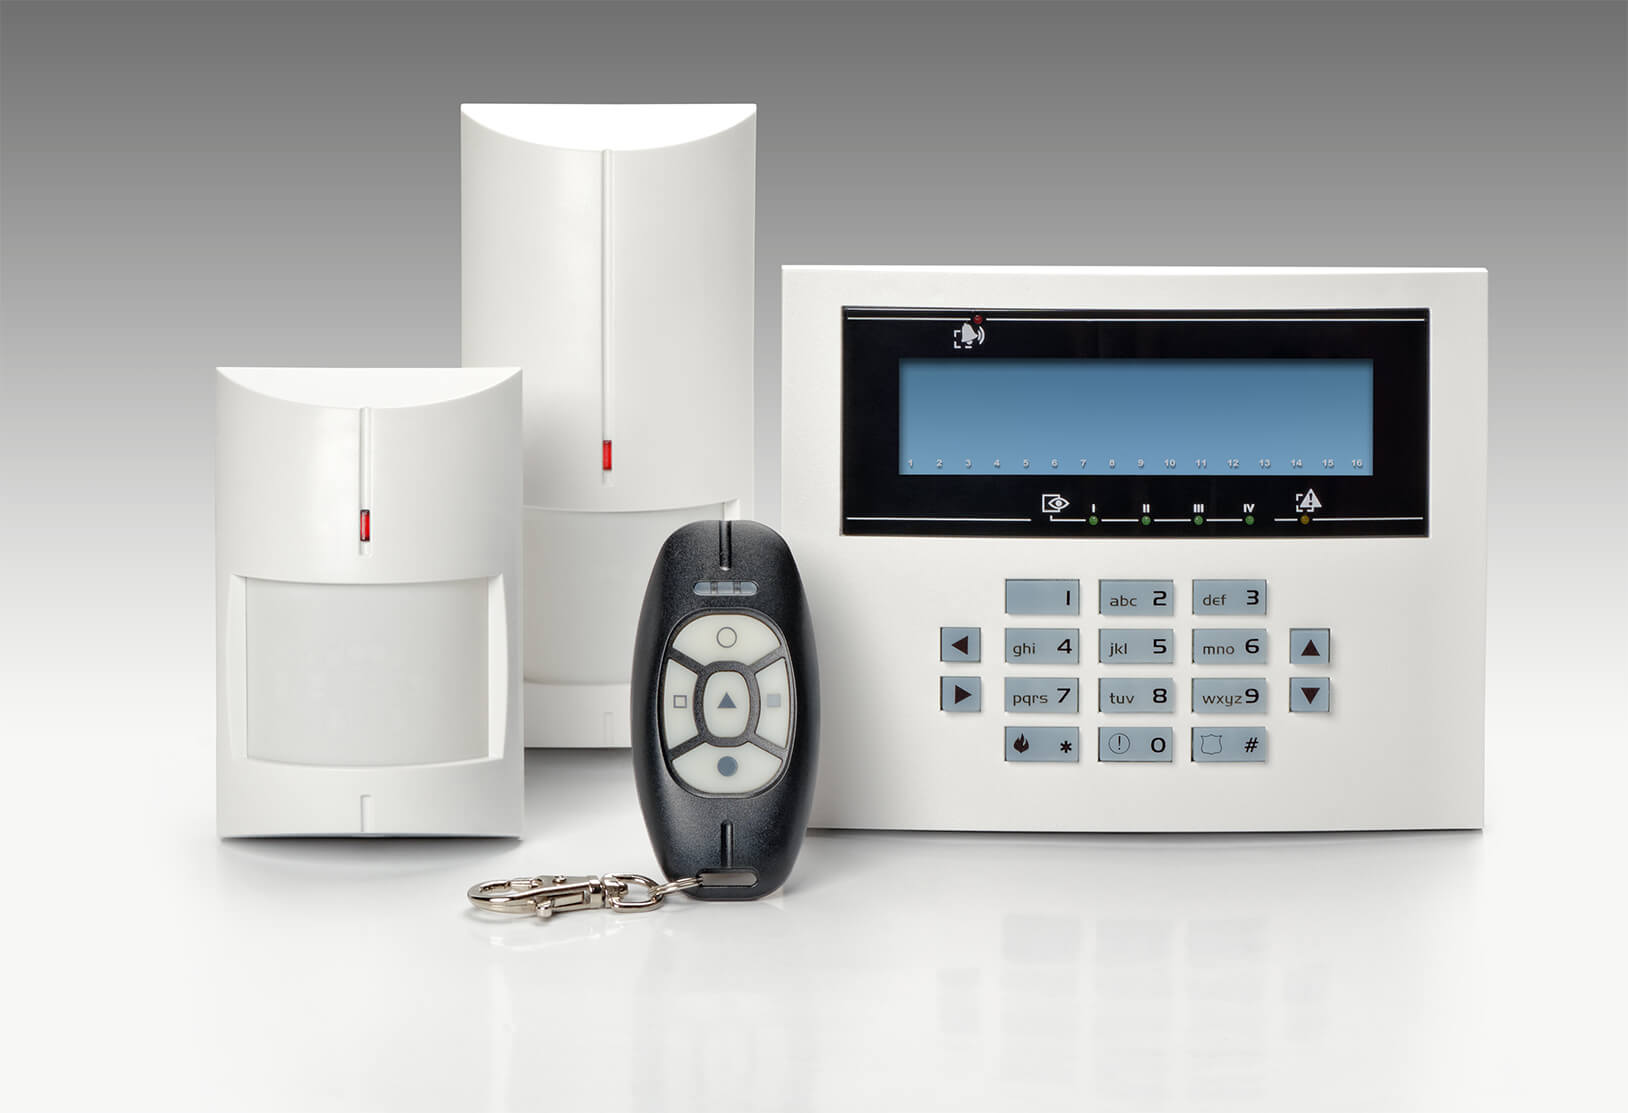 Burglar Alarms Repair in Kensal Rise NW10 - Local Kensal Rise NW10 alarm engineers.Call 02078872244 - See cost/price for burglar alarm repair and book your alarm engineer. No Hidden charges,No Contracts, Book as you need.Engineers on demand.All alarm makes repaired.Same day service ability.